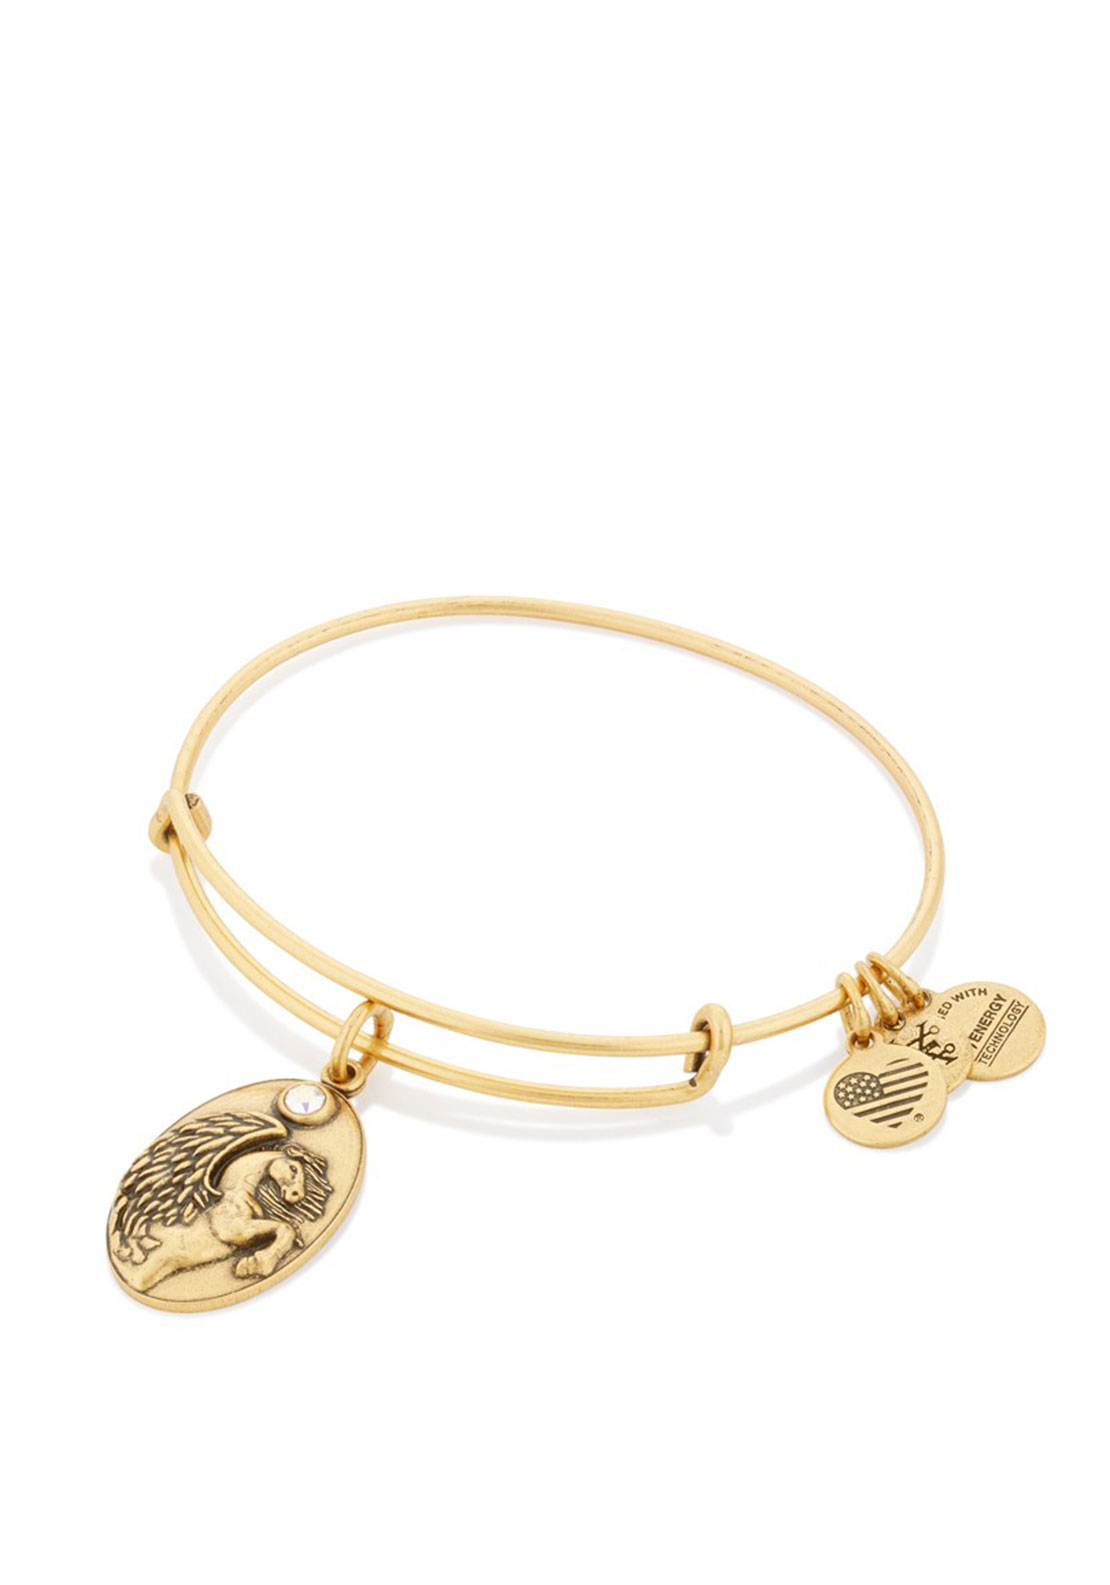 Alex and Ani Pegasus Charm Bracelet, Gold